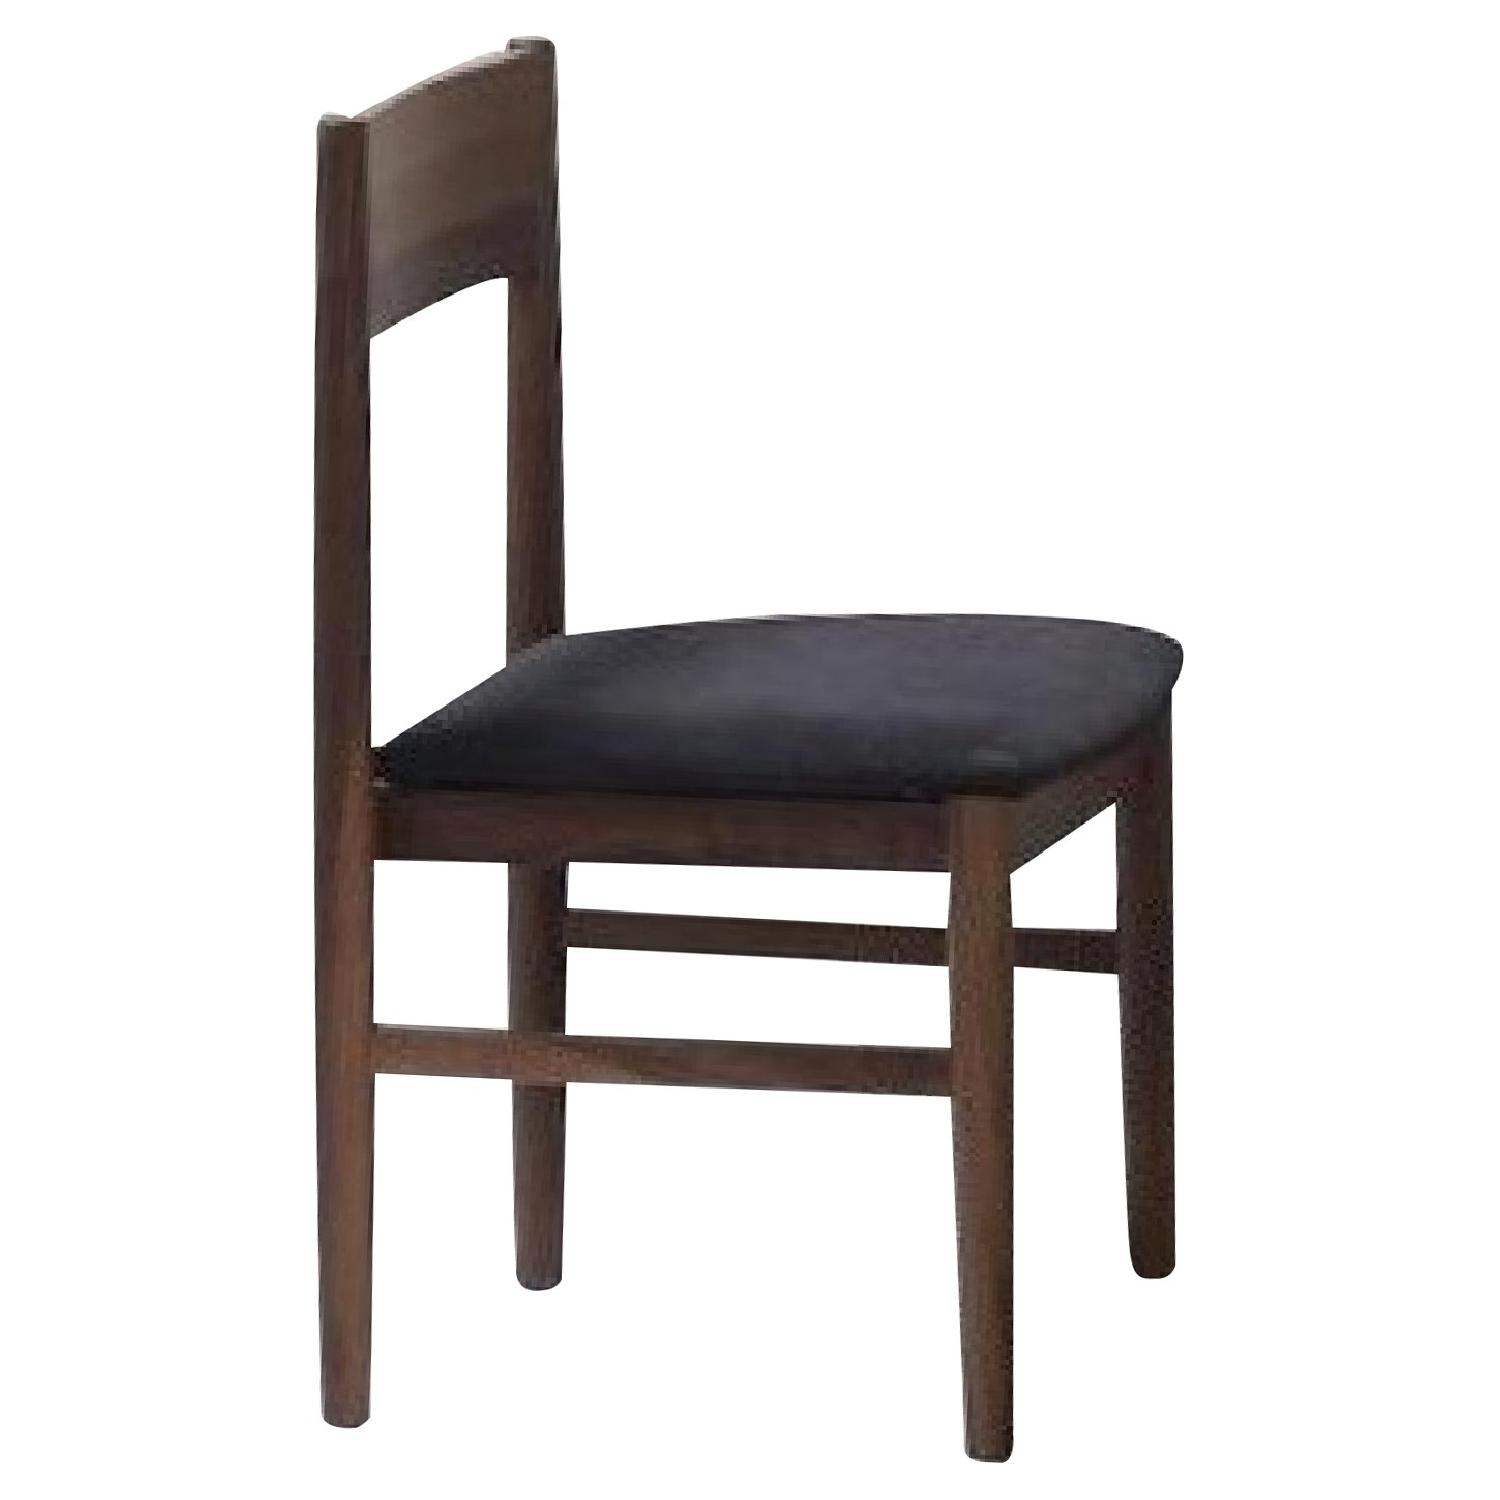 Mid Century Style Dining Chair In Walnut Finish w/ Padded Se